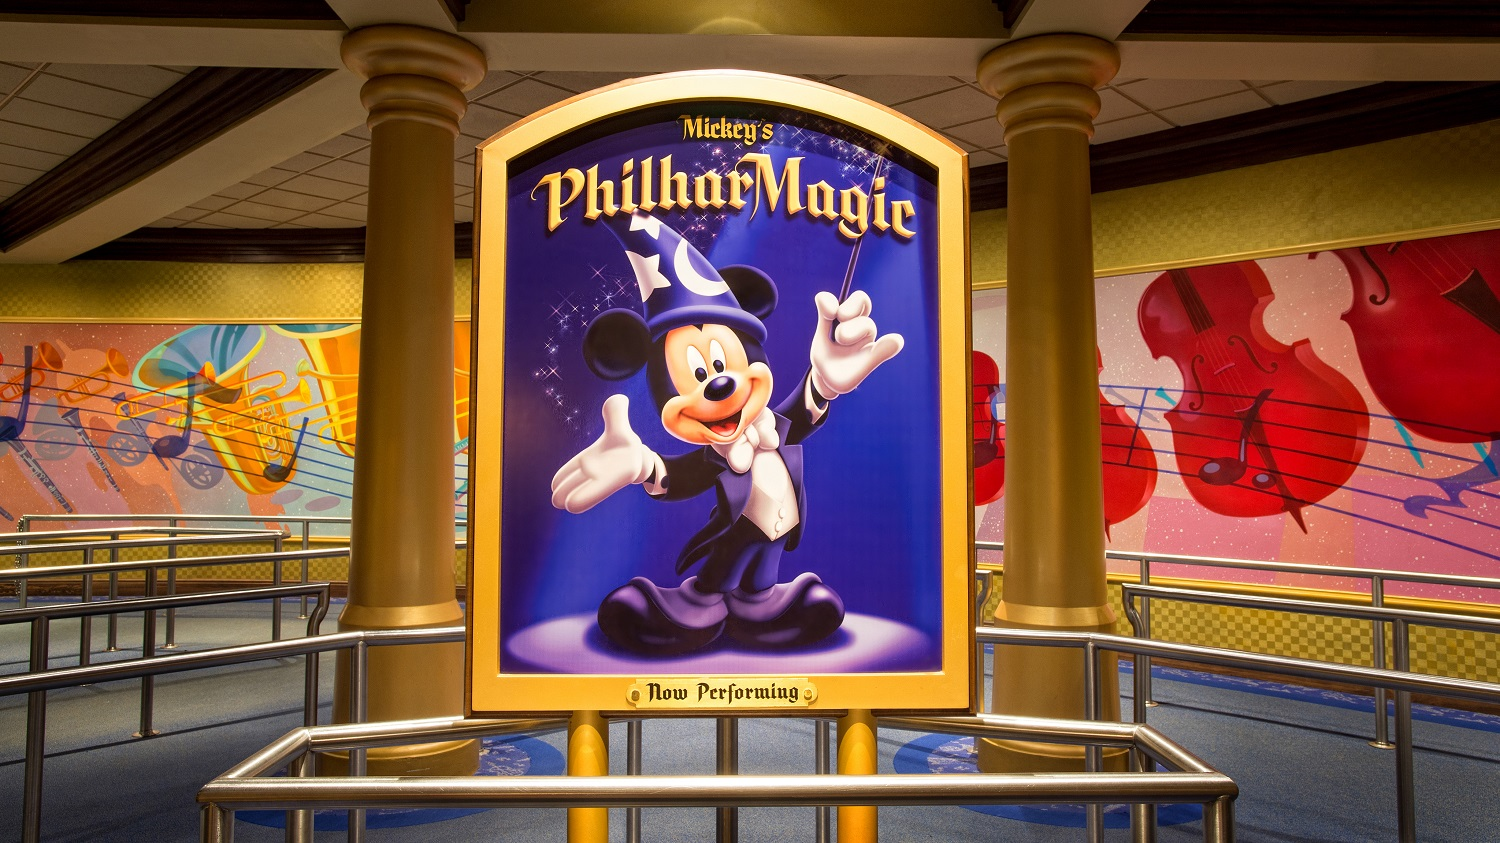 Mickey's Philharmagic show at Disneyland Paris